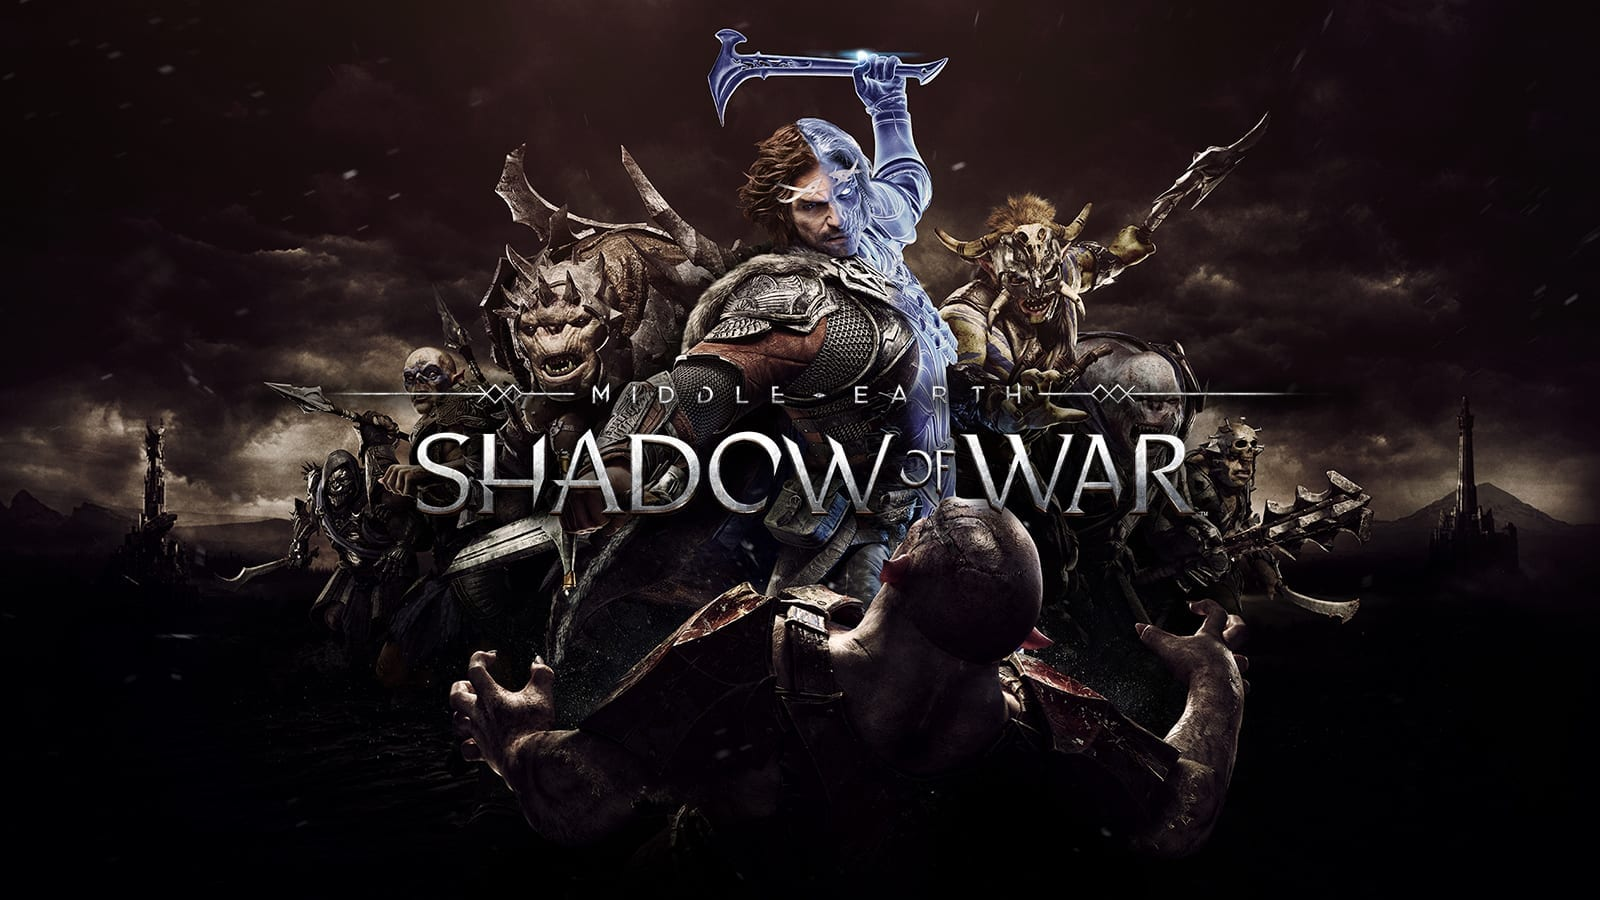 MiddleEarth: Shadow of War